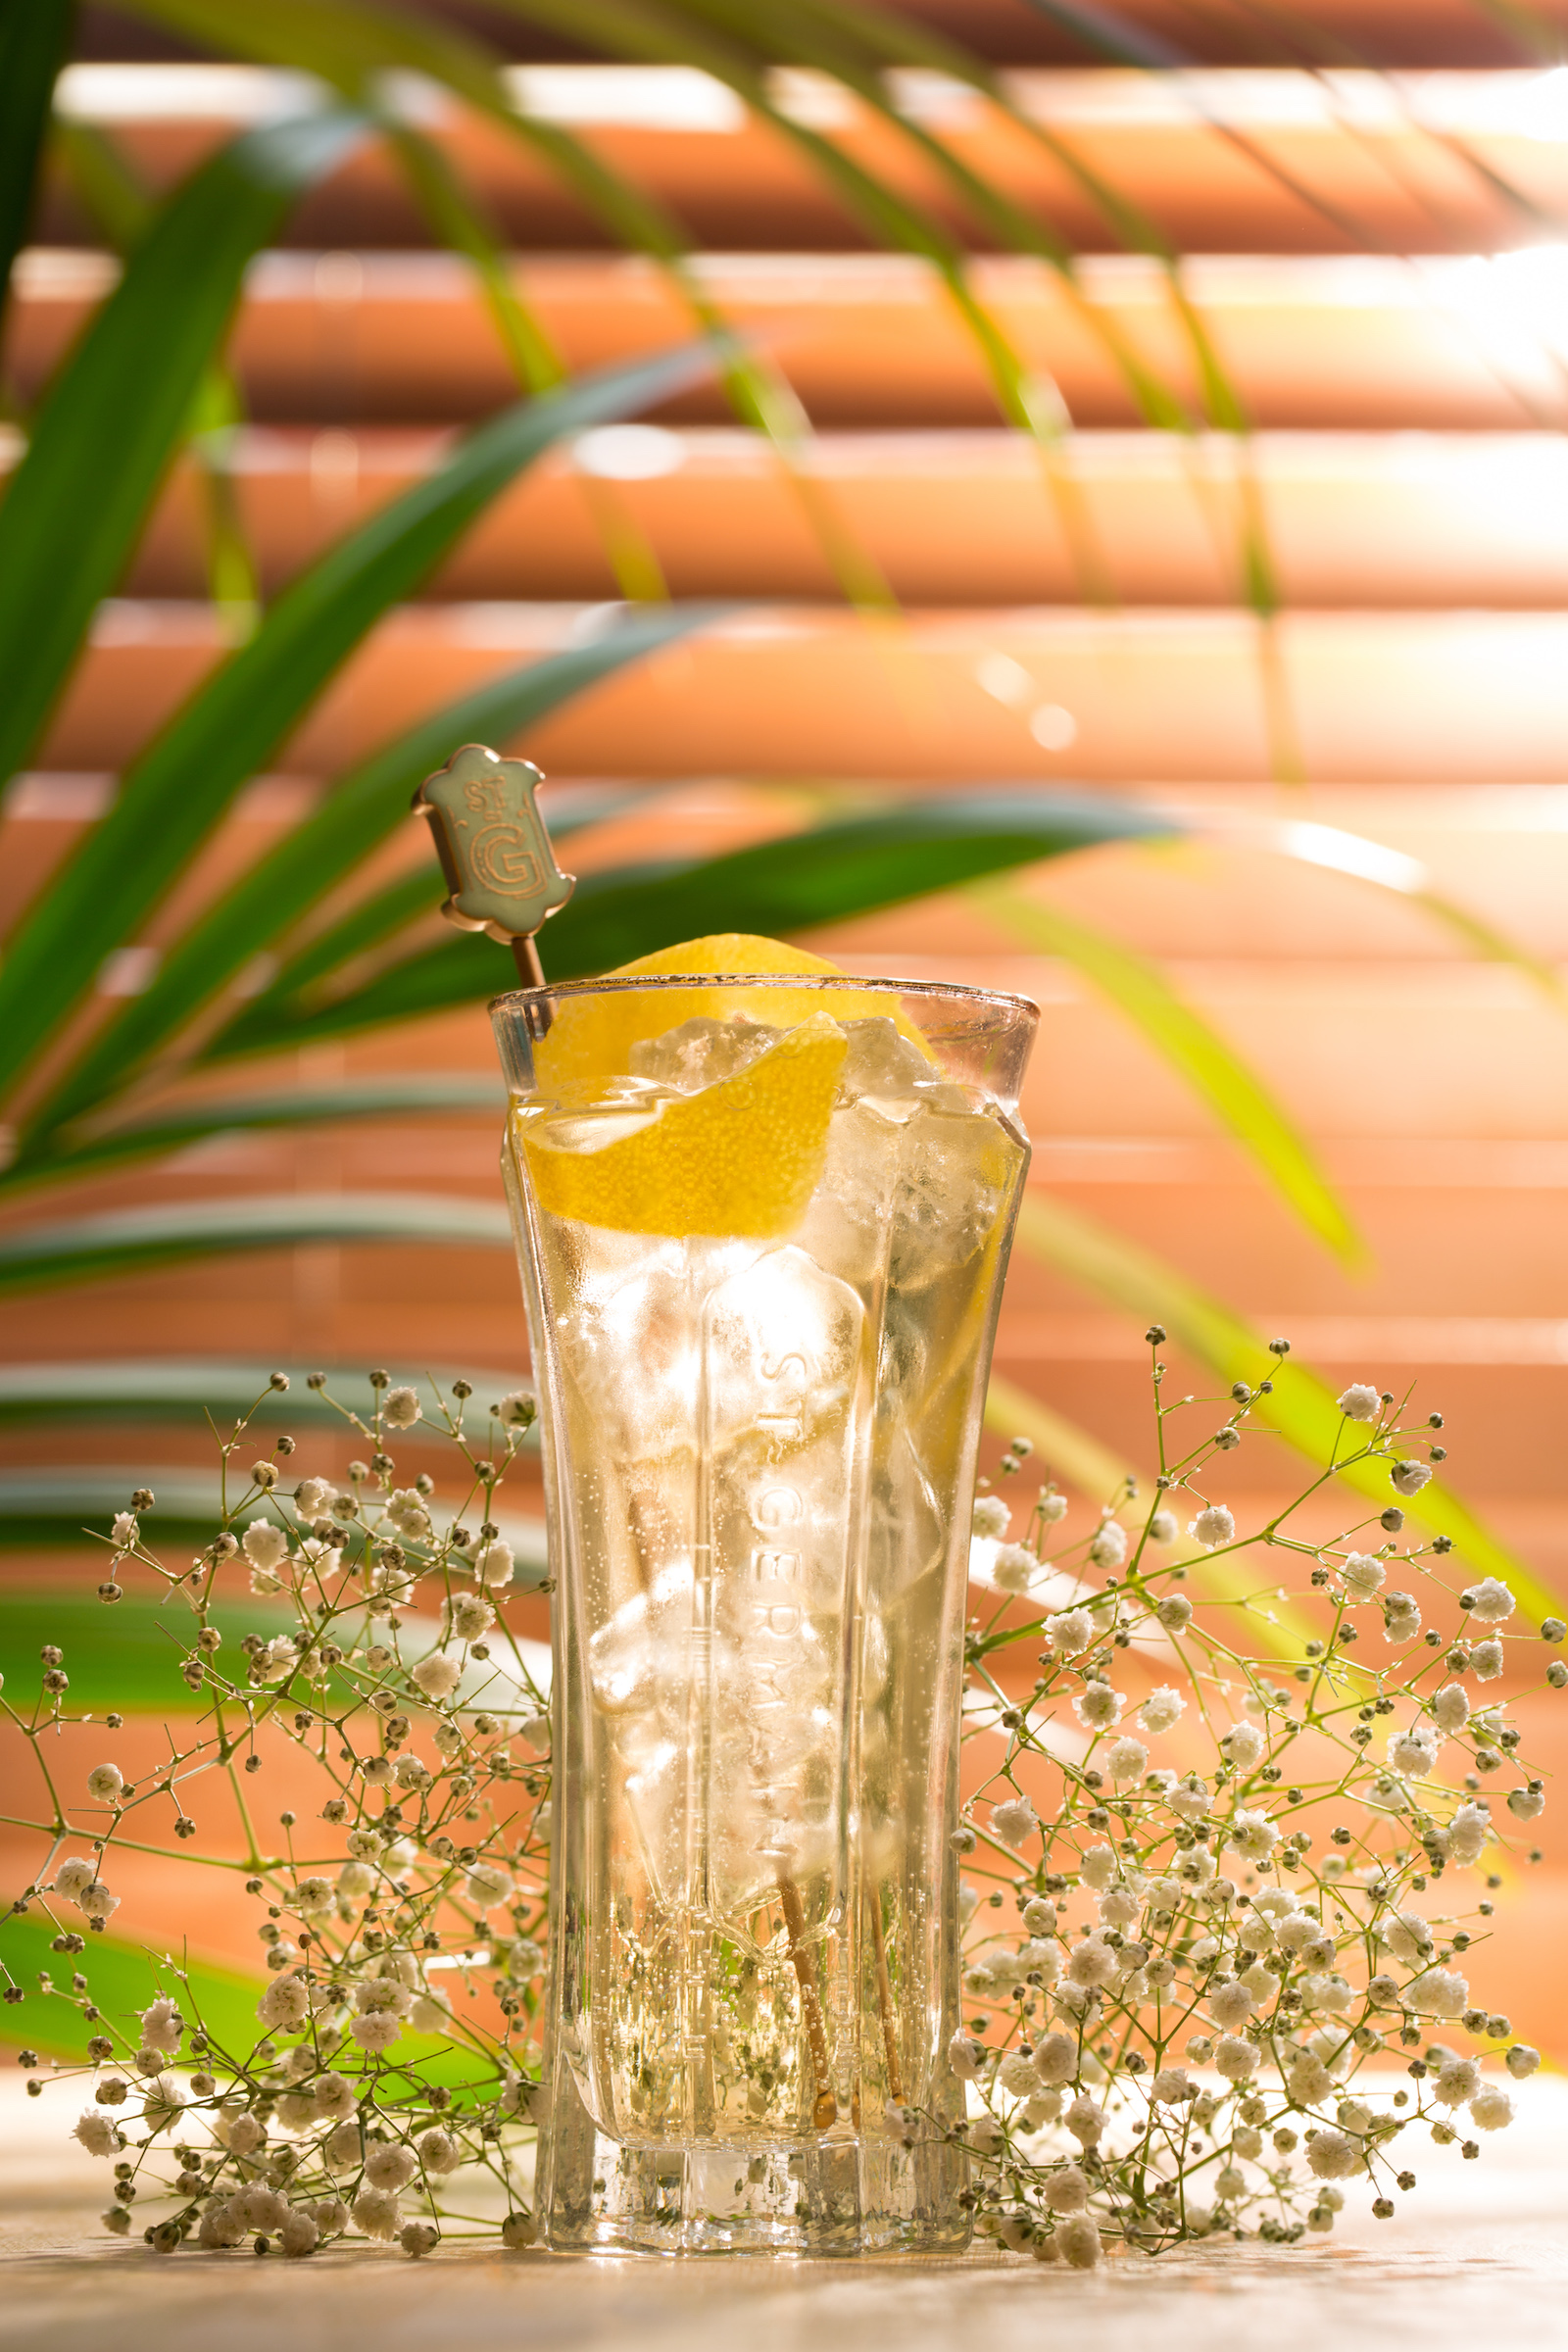 The classic St-Germain Spritz